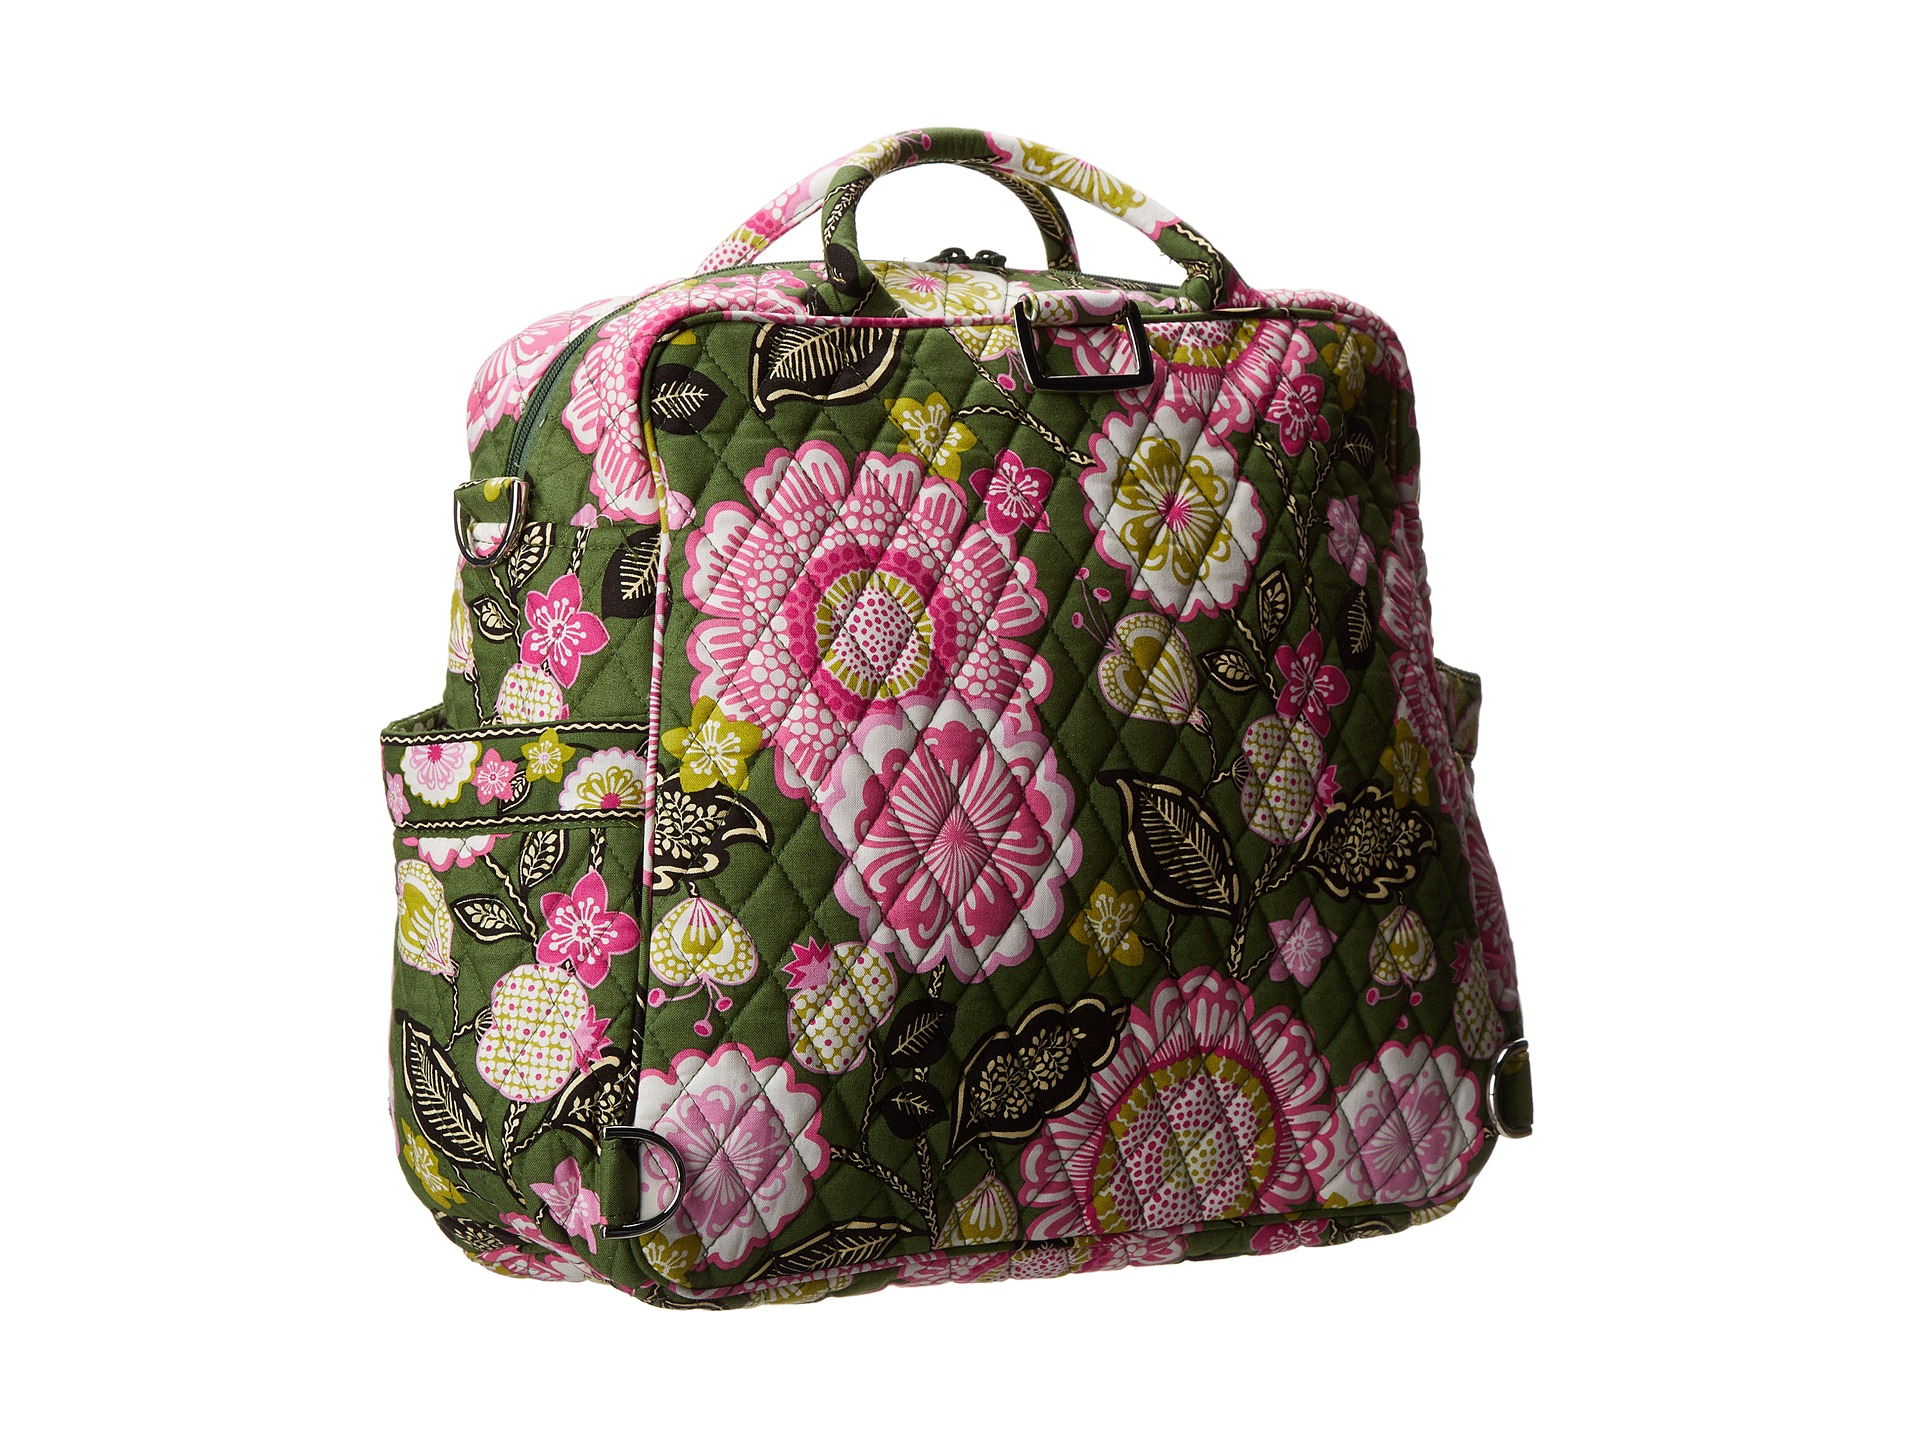 vera bradley convertible baby bag olivia pink shipped free at zappos. Black Bedroom Furniture Sets. Home Design Ideas